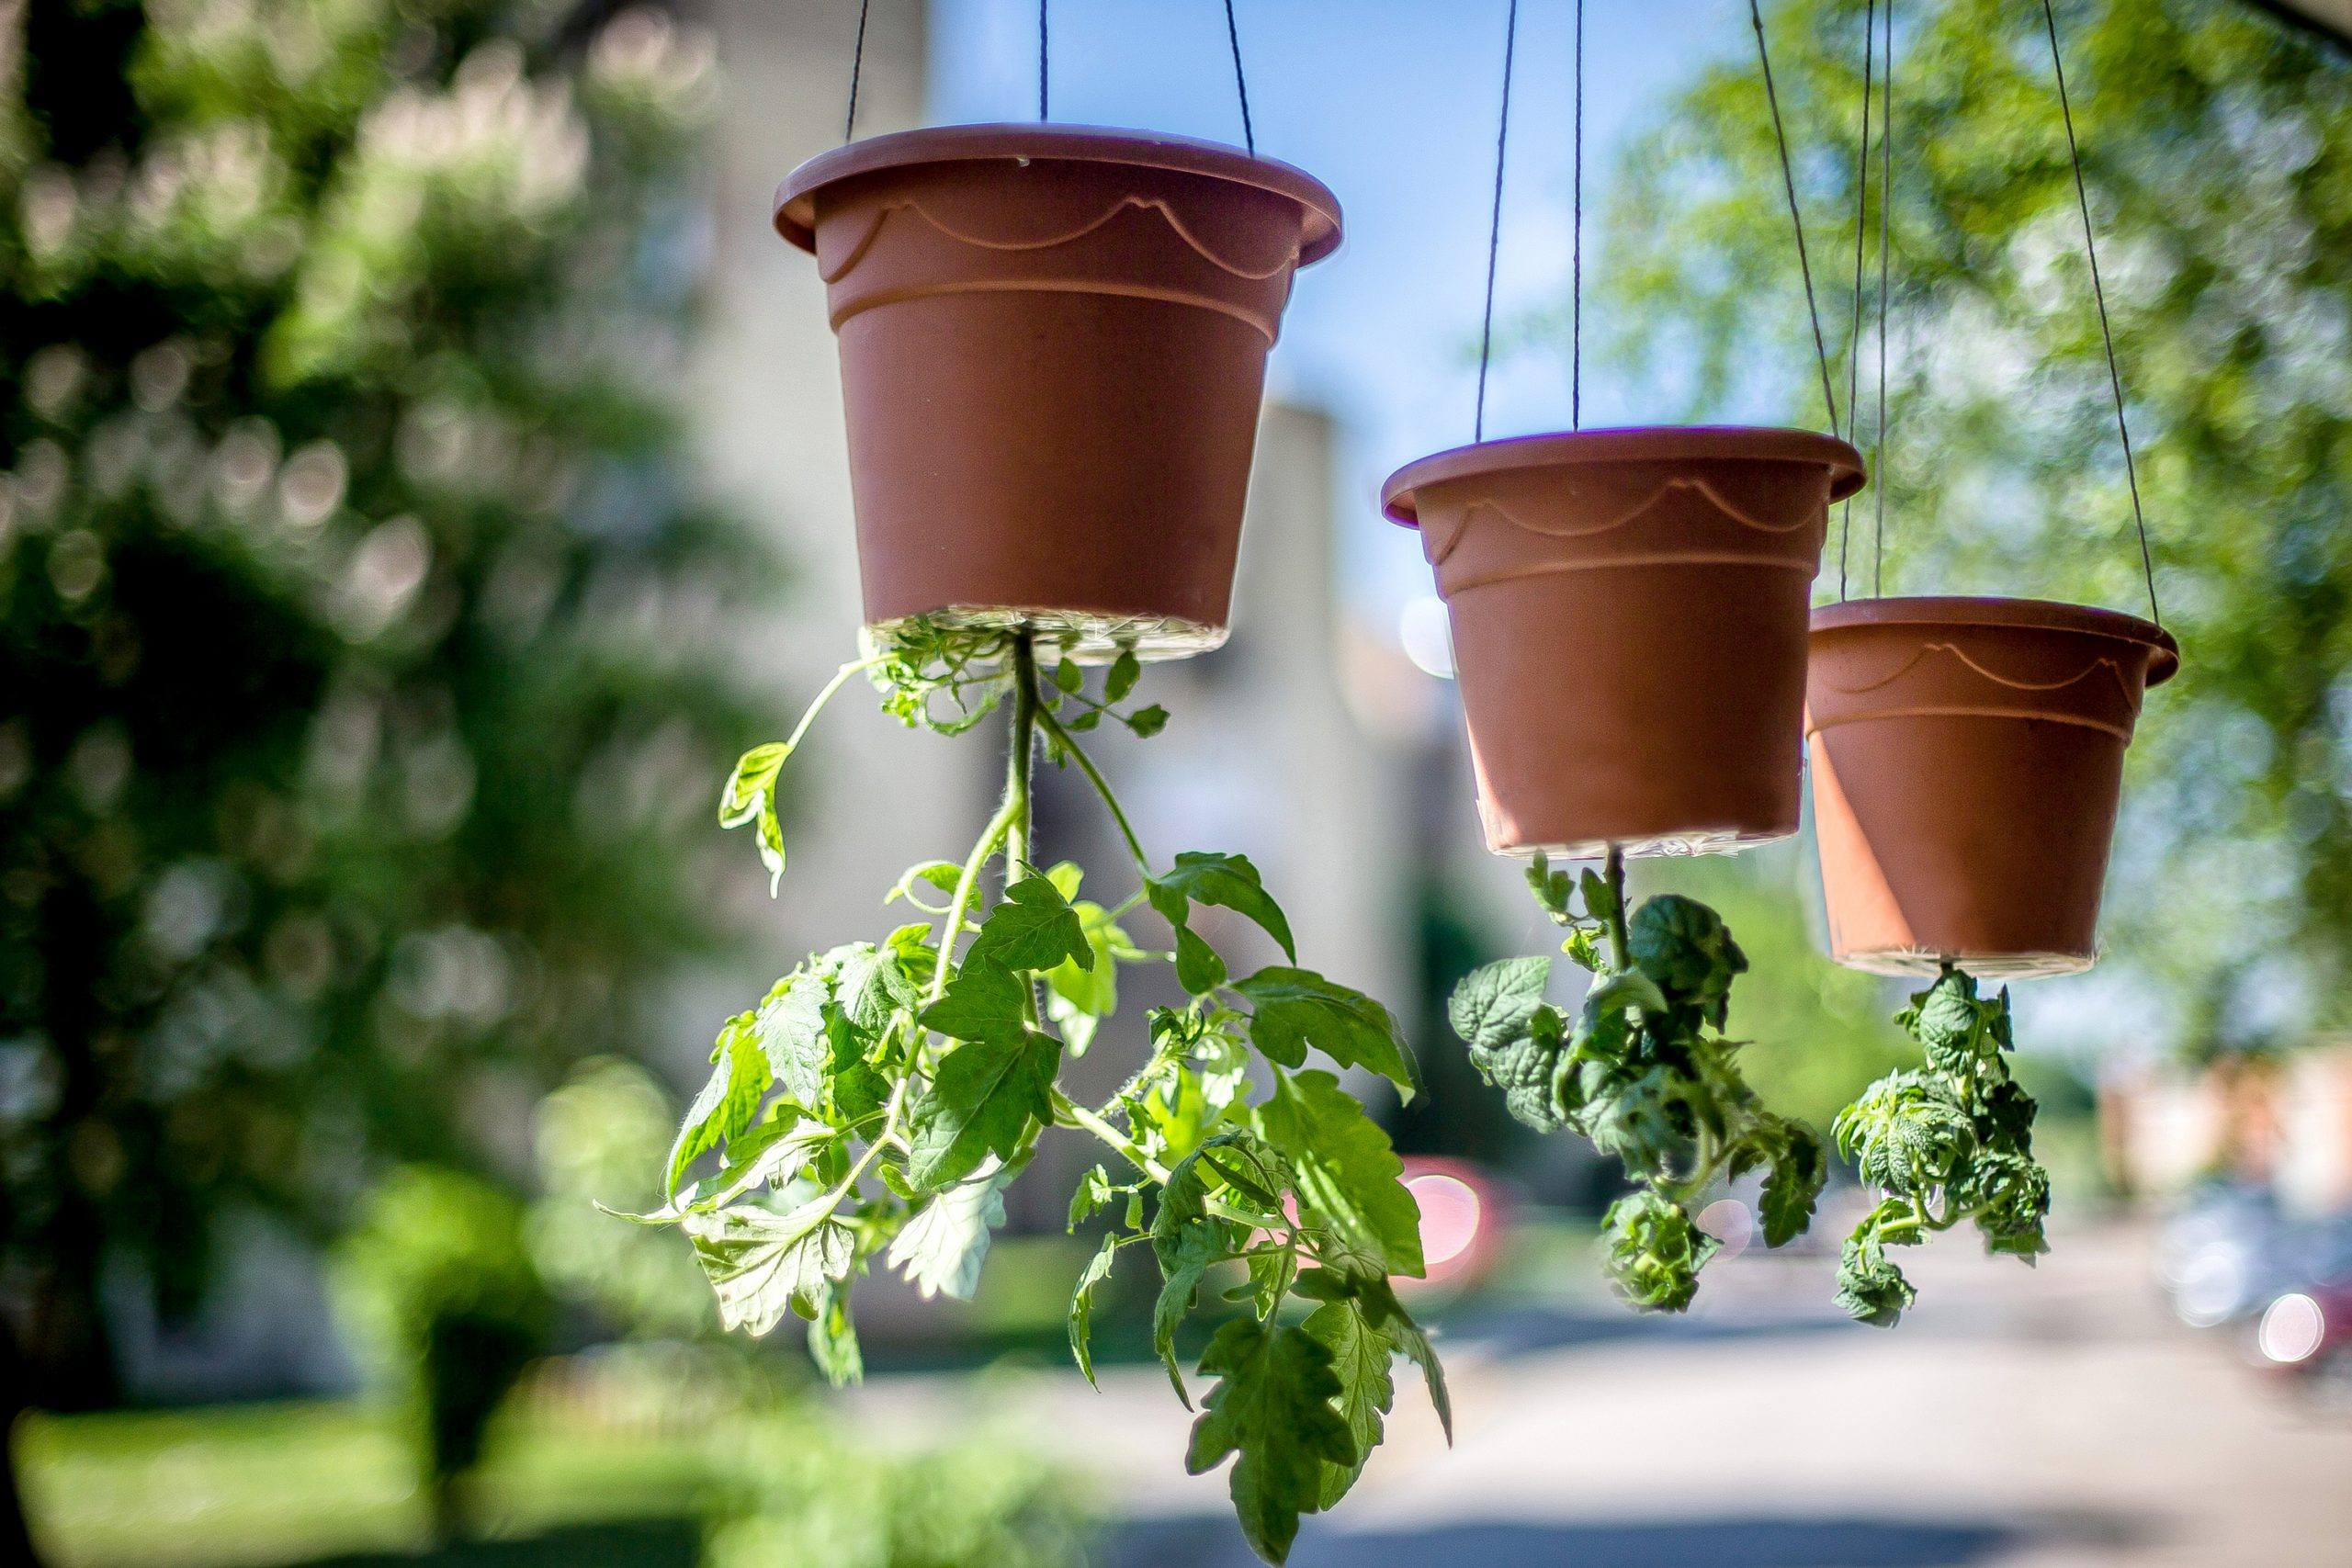 If you are short on garden space, or just want to add a little greenery somewhere else, try to grow your own upside down tomatoes. Just make sure they get plenty of sunlight.